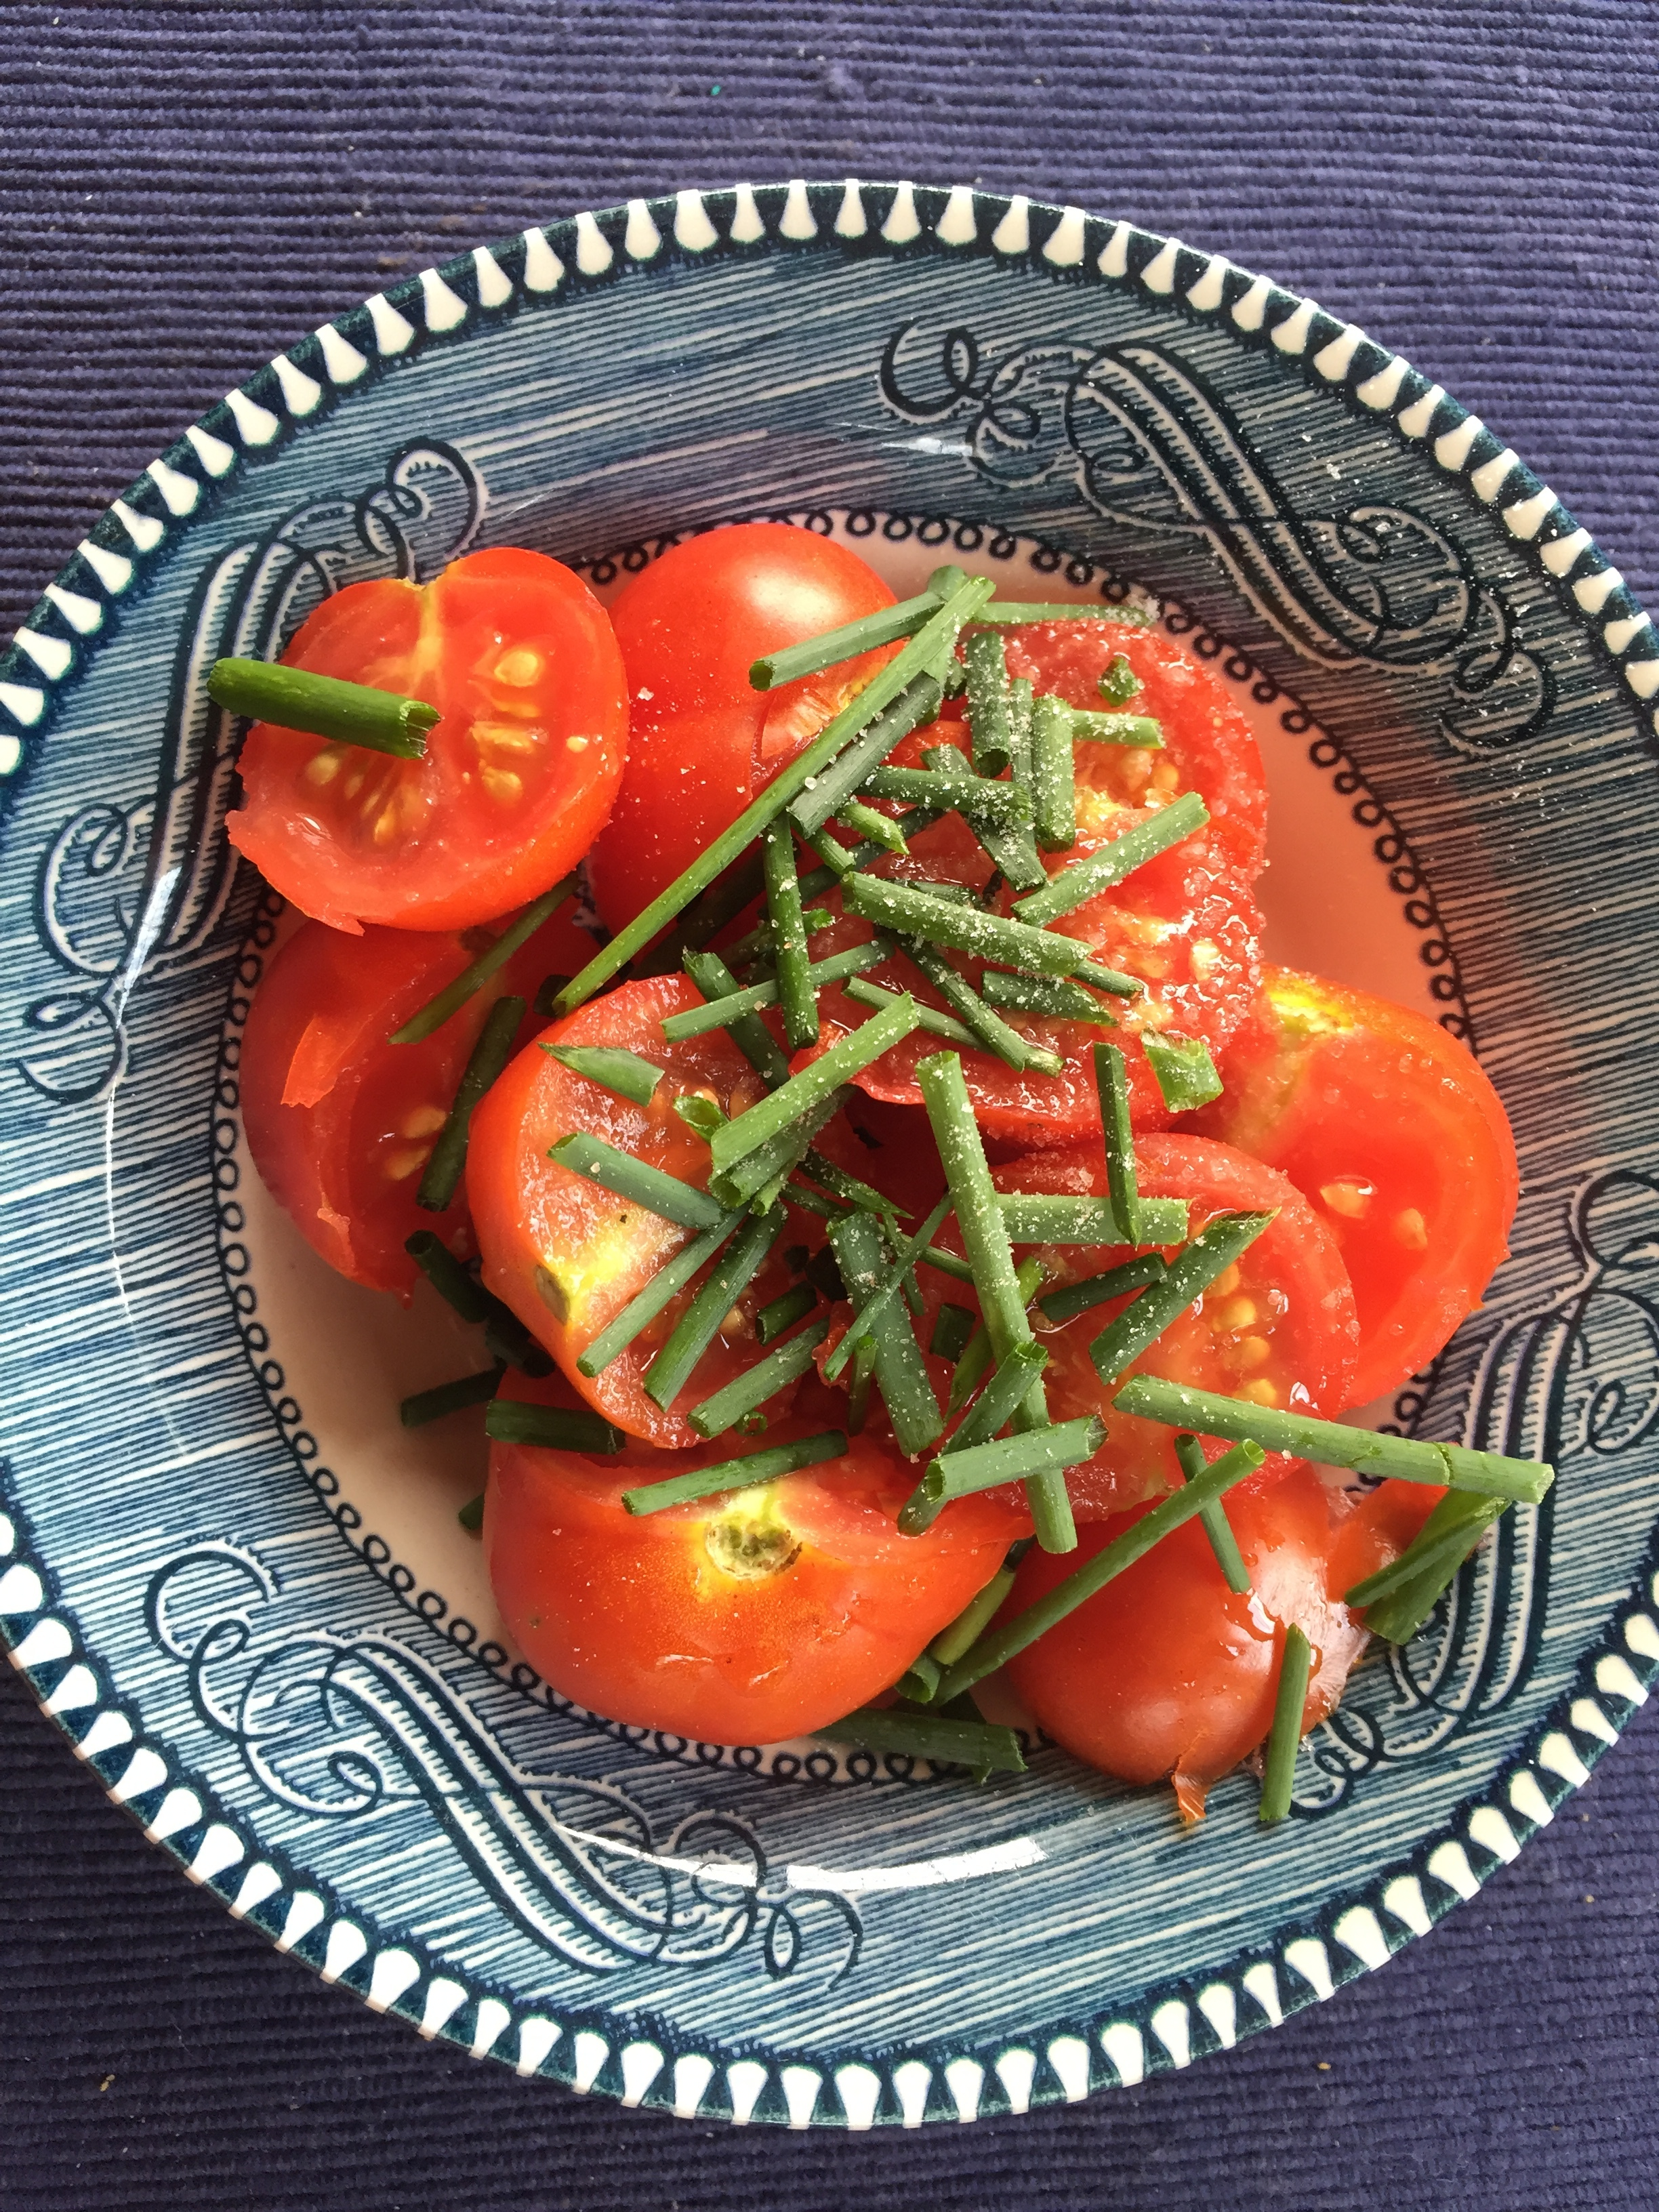 The tomatoes became an appetizer -